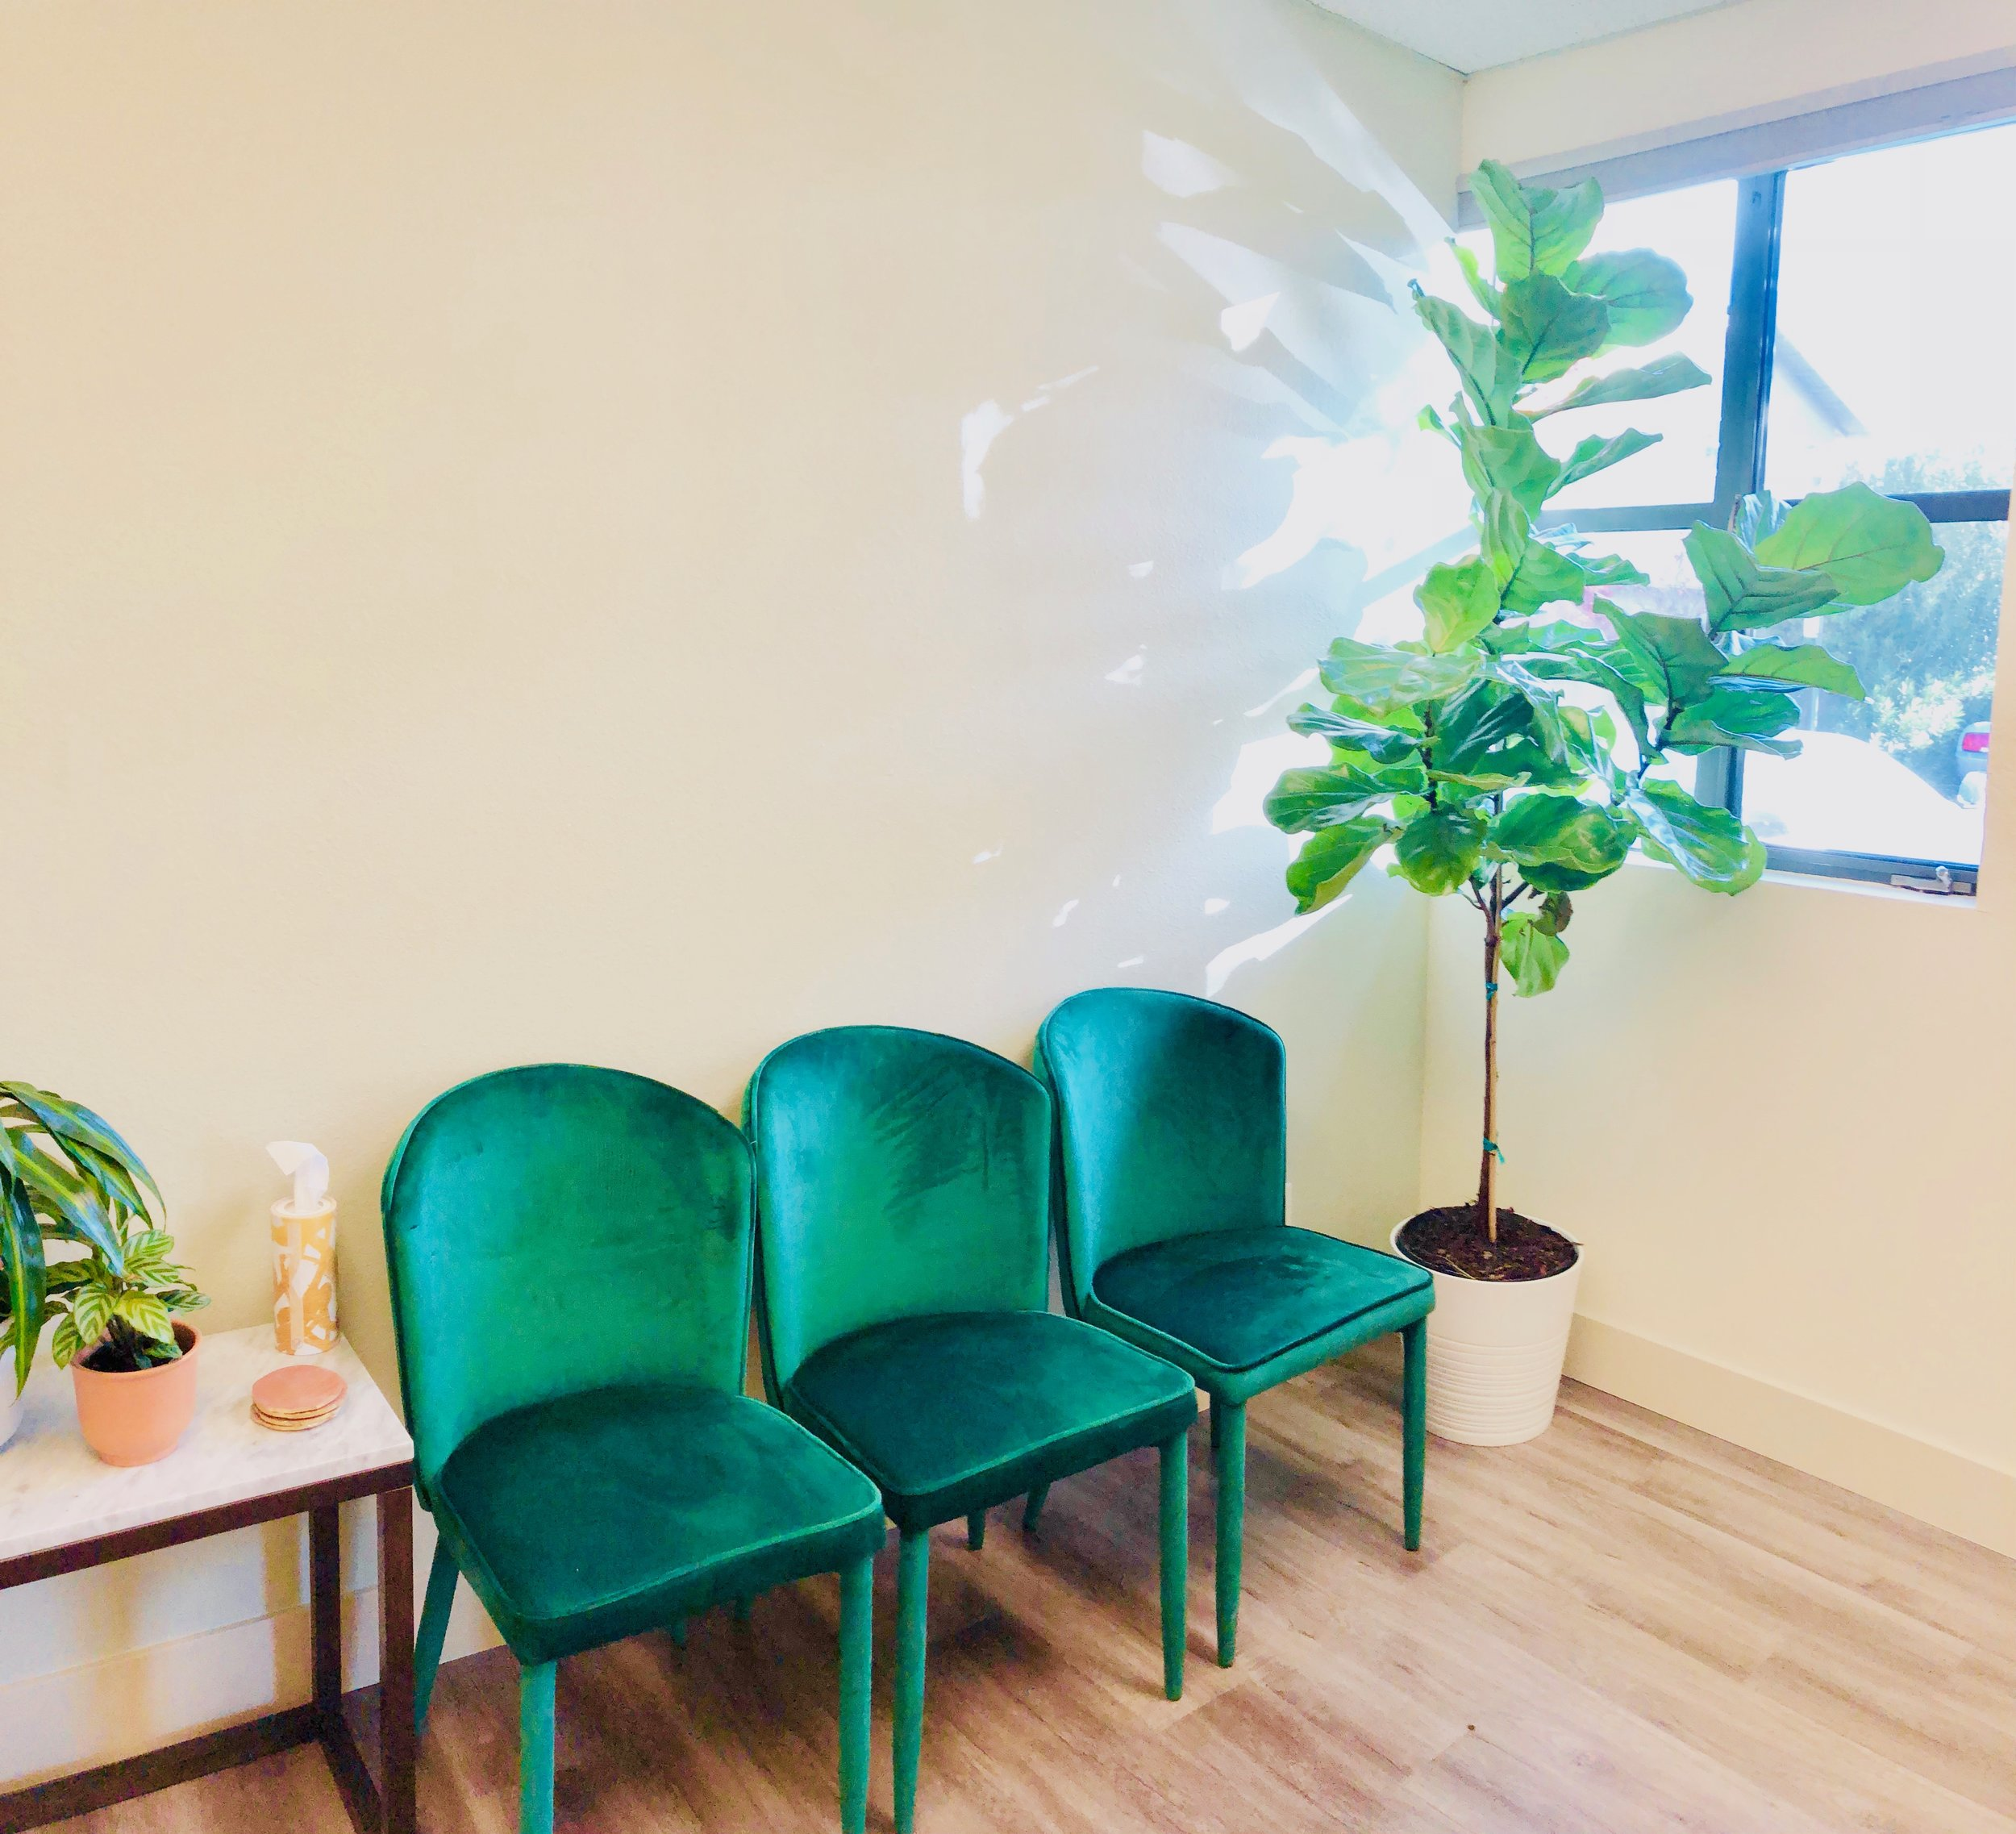 Our Practice - Located in East Sacramento, a grounding healing space awaits your arrival.